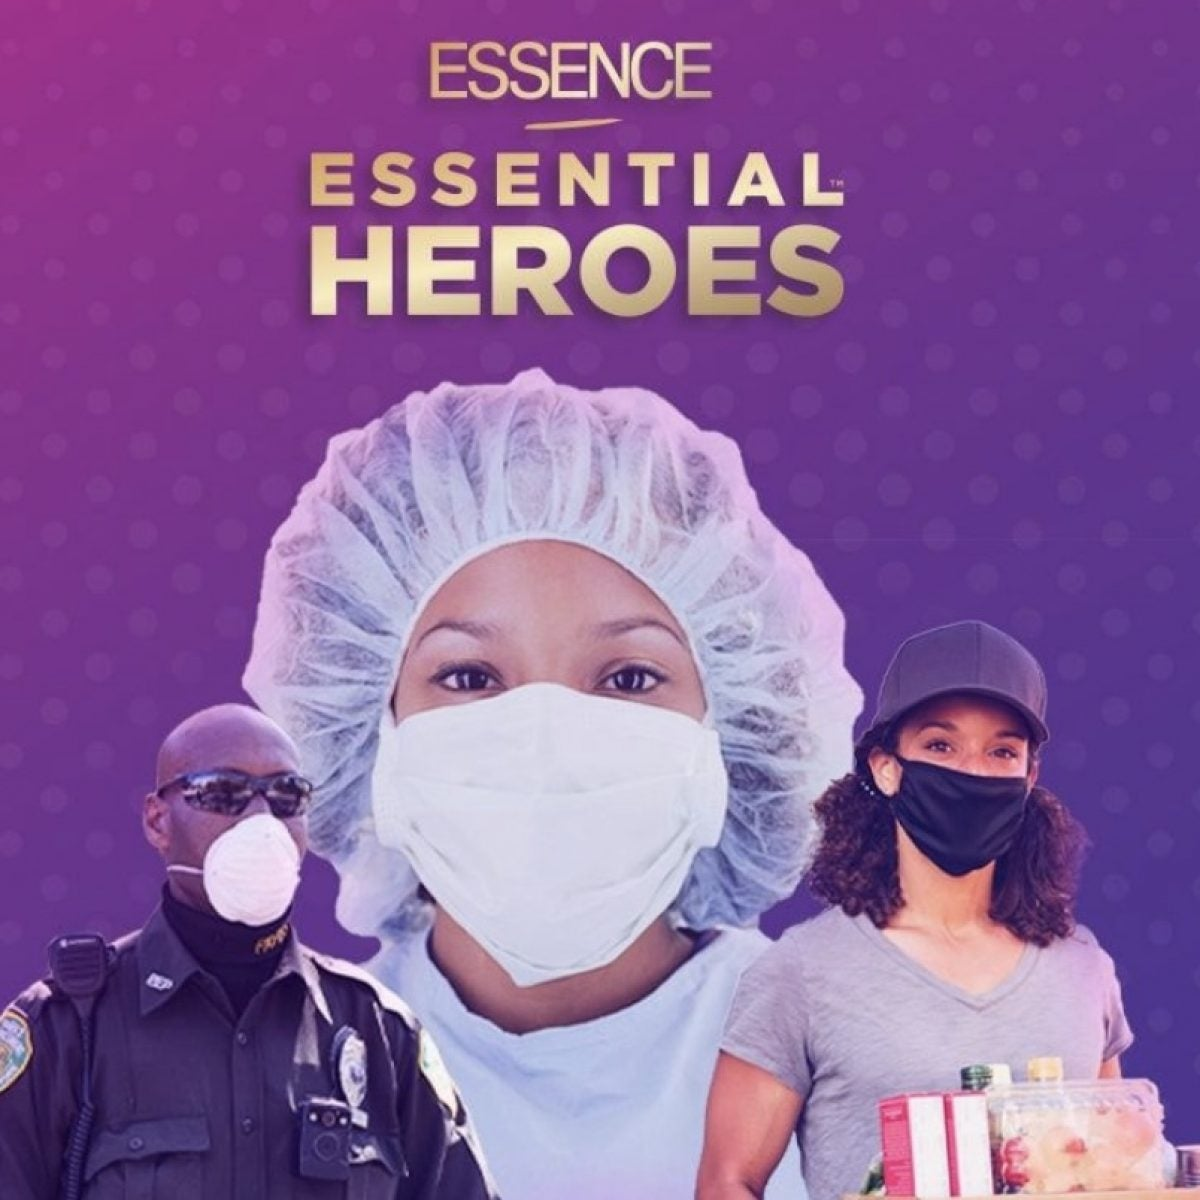 #MyEssentialHeroes: Do You Have A Loved One On The Frontlines? We Want To Hear From You